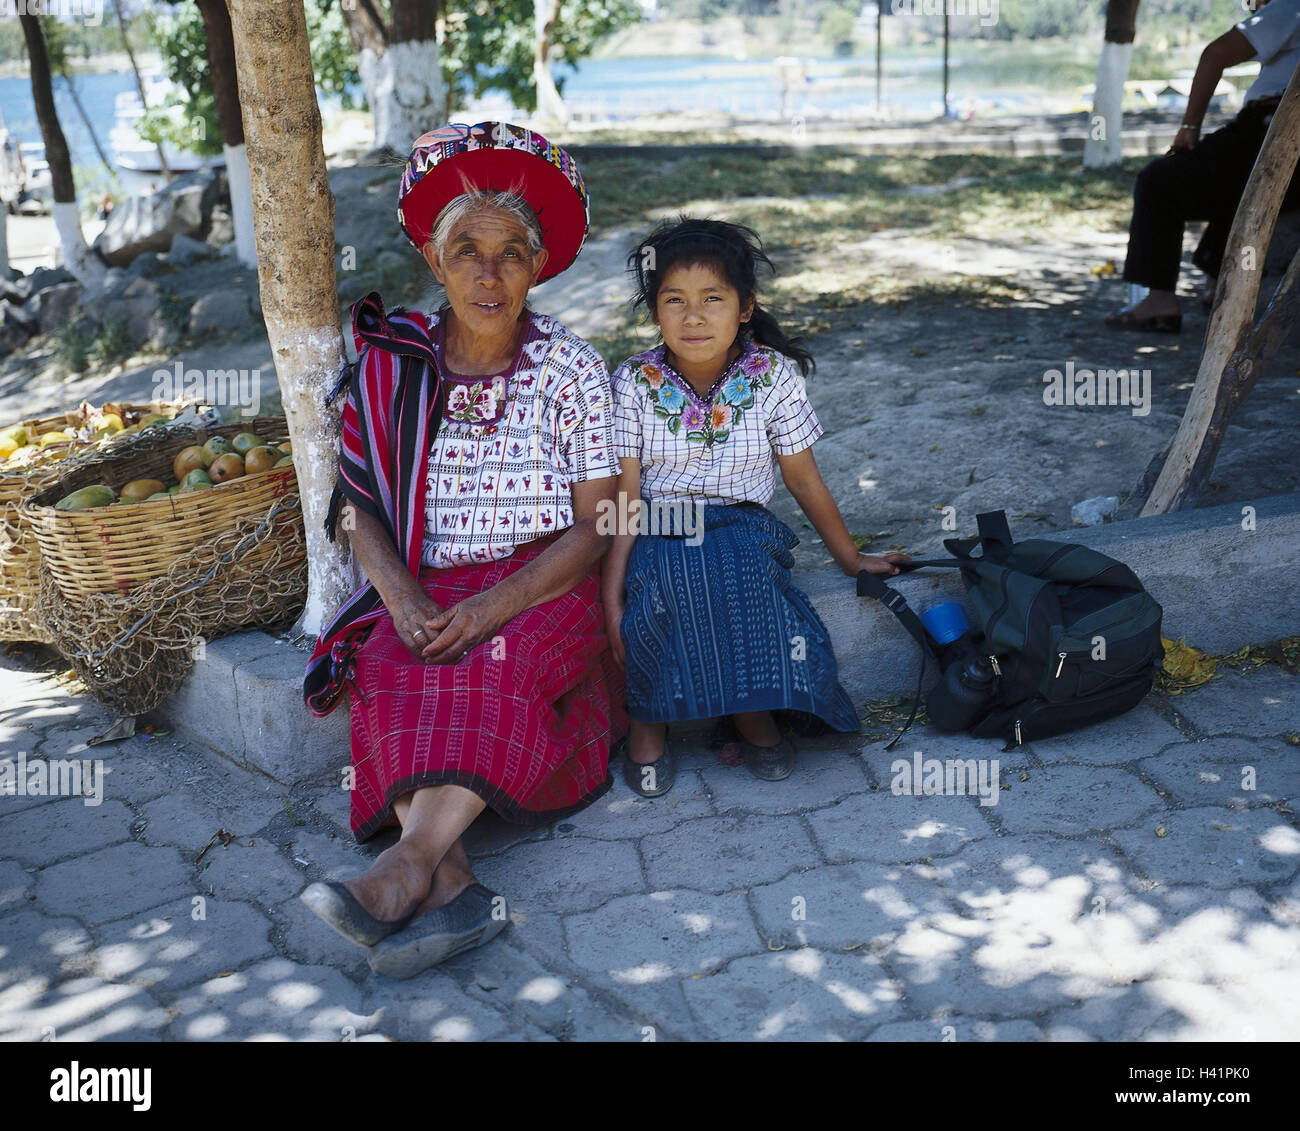 Guatemala, Atitlansee, Santiago, Atitlan, senior, girl, folklore clothes, no model release Latin America, highland - Stock Image